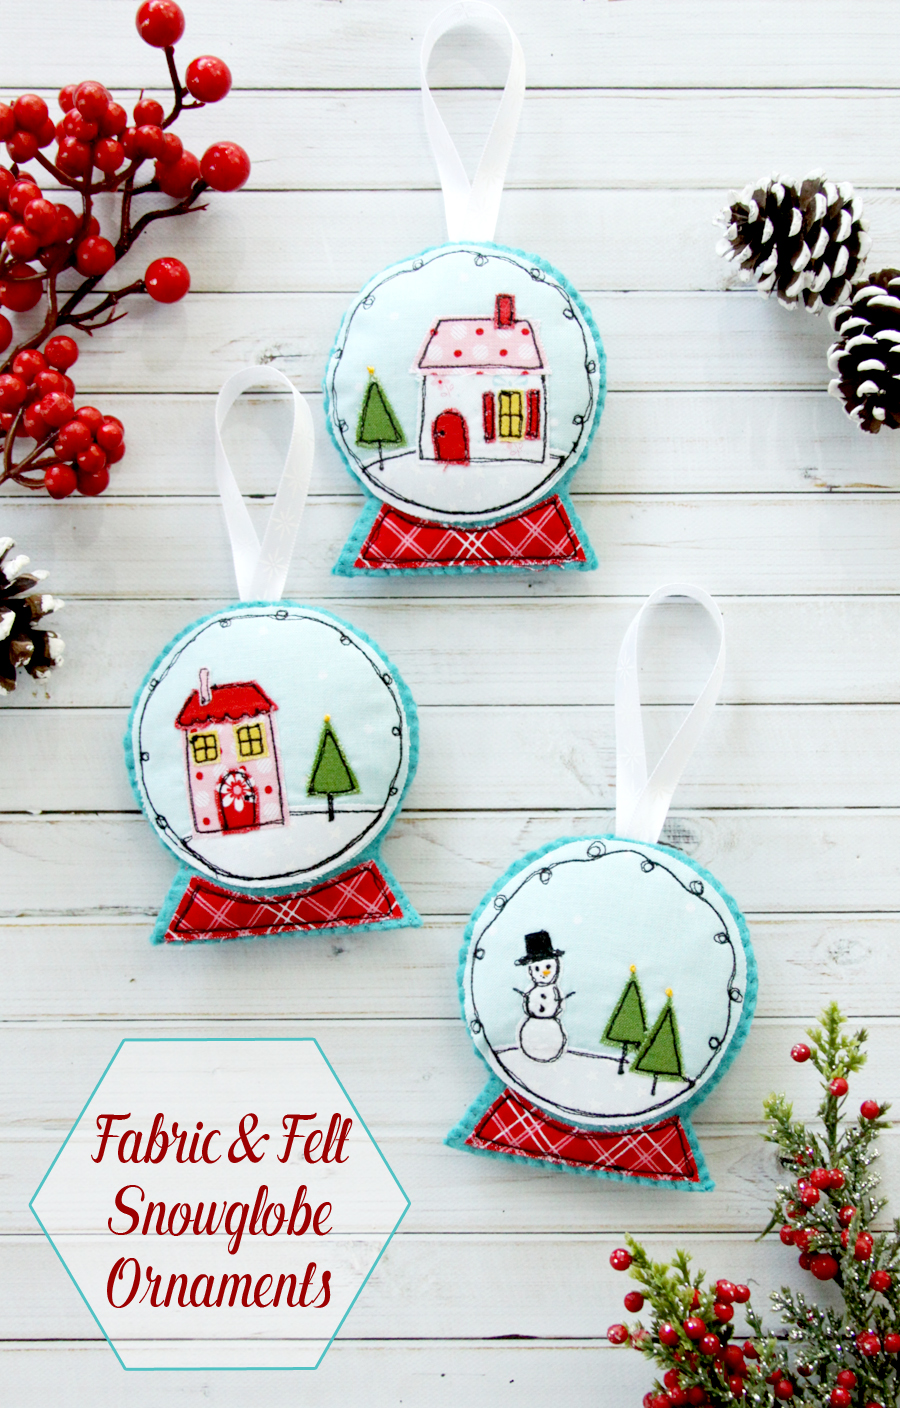 Fabric and Felt Snowglobe Ornaments -